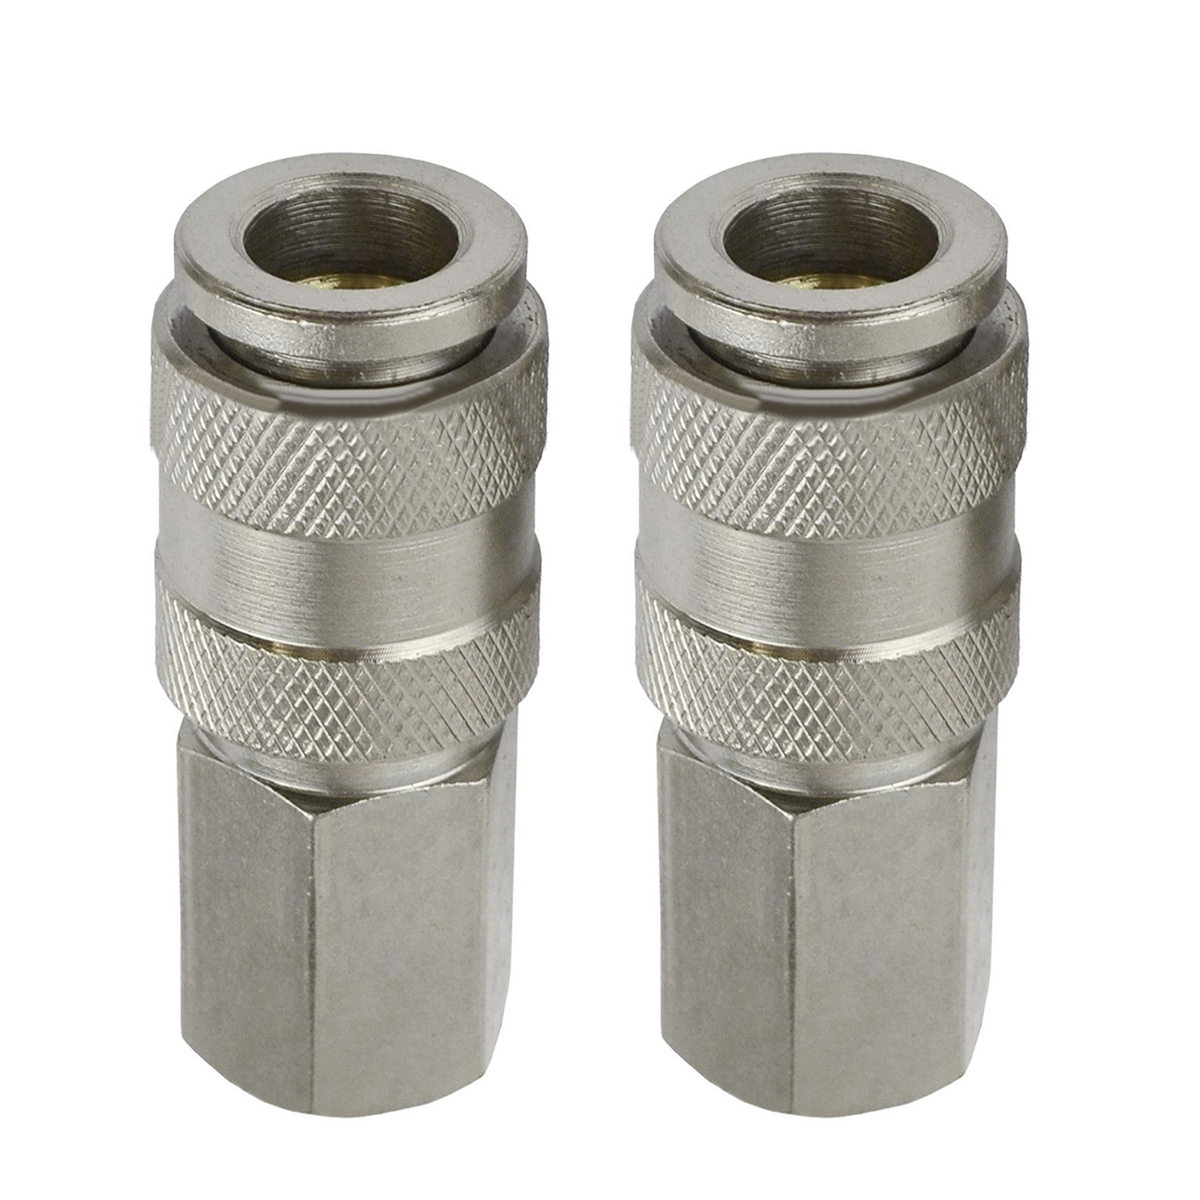 2pcs Euro Female Quick Release Fittings with 1/4 BSP Female Thread Air Line Hose Connectors 3 8 bsp female air compressor pneumatic quick coupler connector socket fittings set